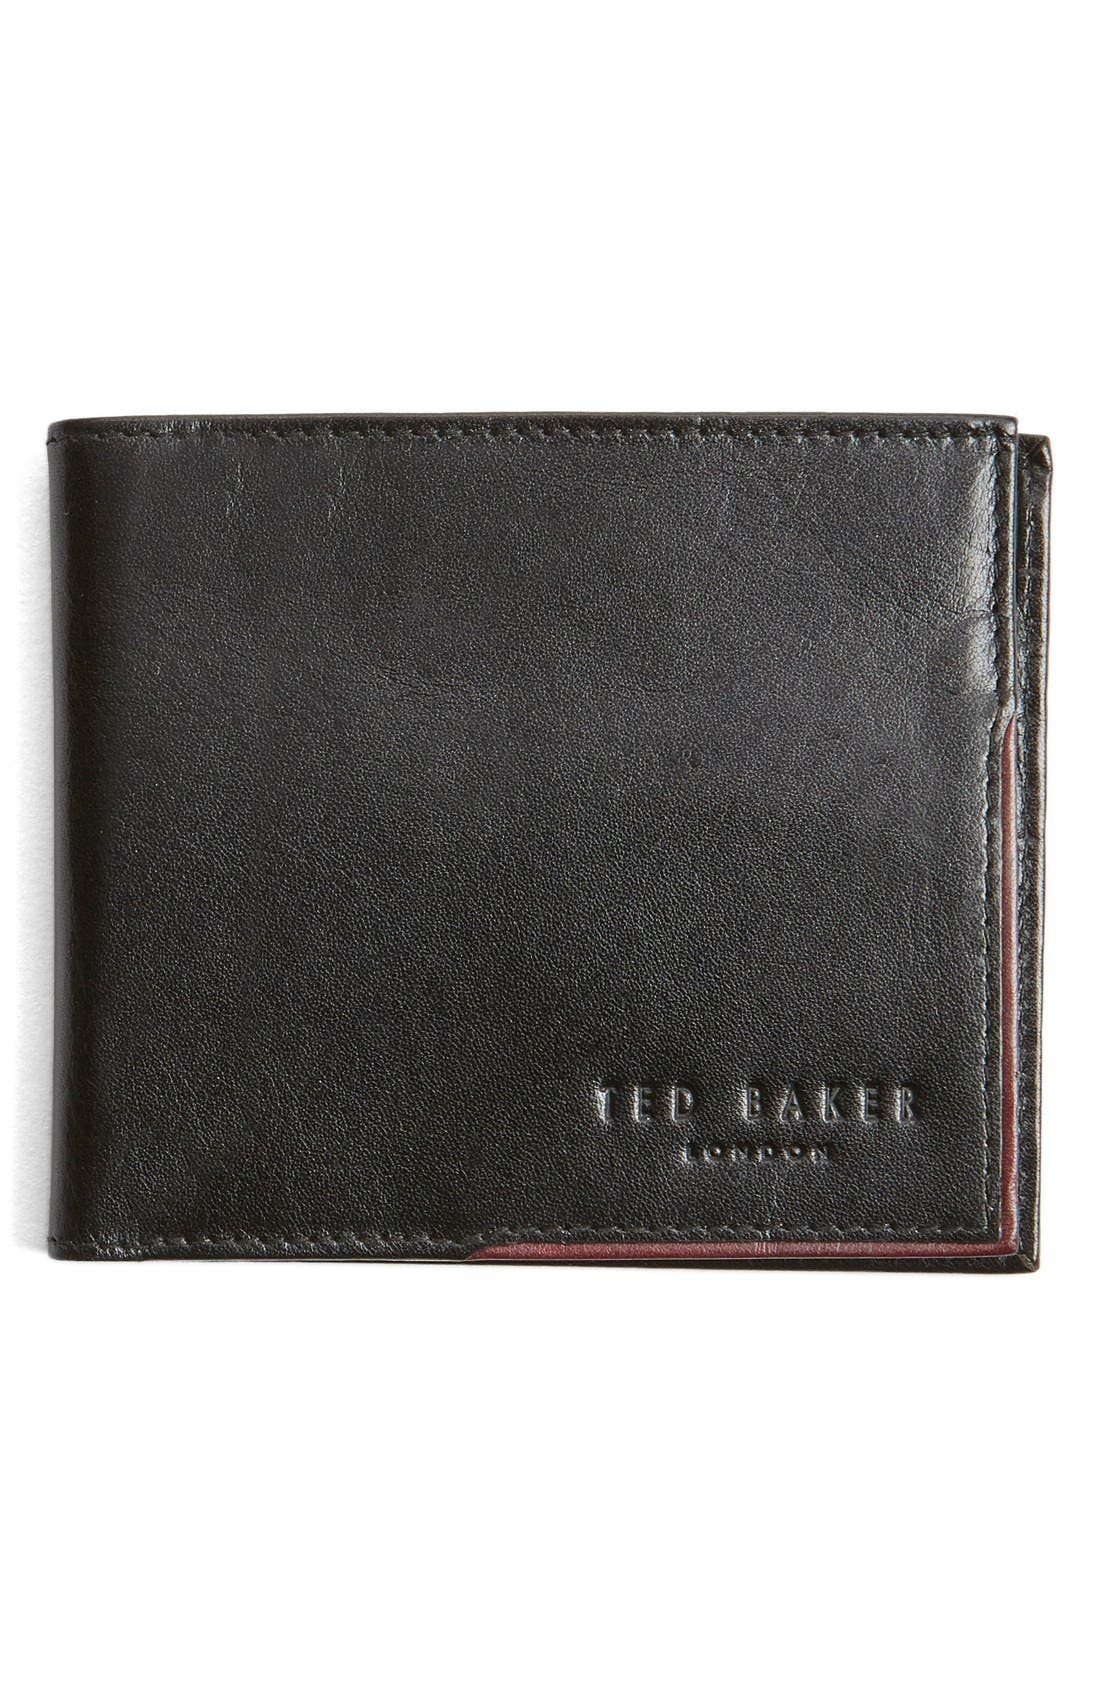 Alternate Image 1 Selected - Ted Baker London Carouse Bifold Leather Wallet